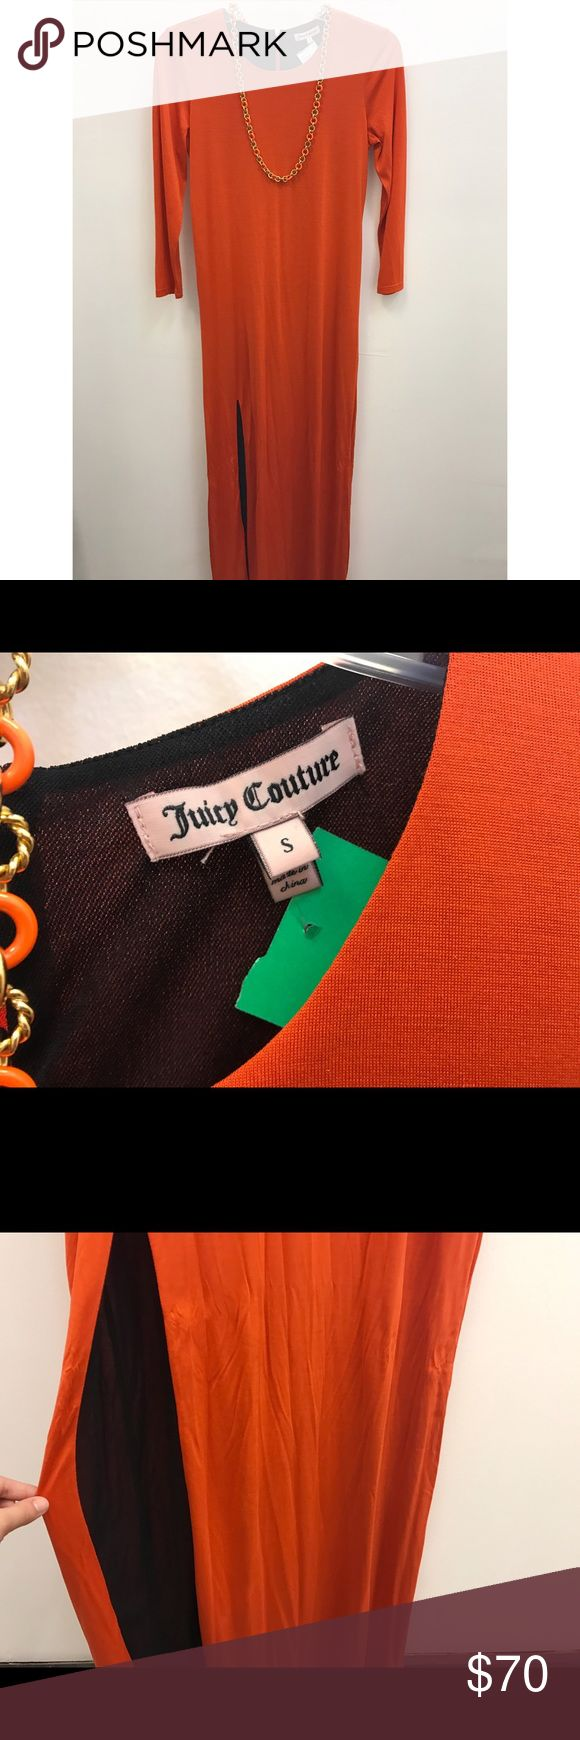 Juicy Couture Orange Maxi Dress Juicy Couture orange jersey maxi dress with 3/4 sleeves, Size S Juicy Couture Dresses Maxi